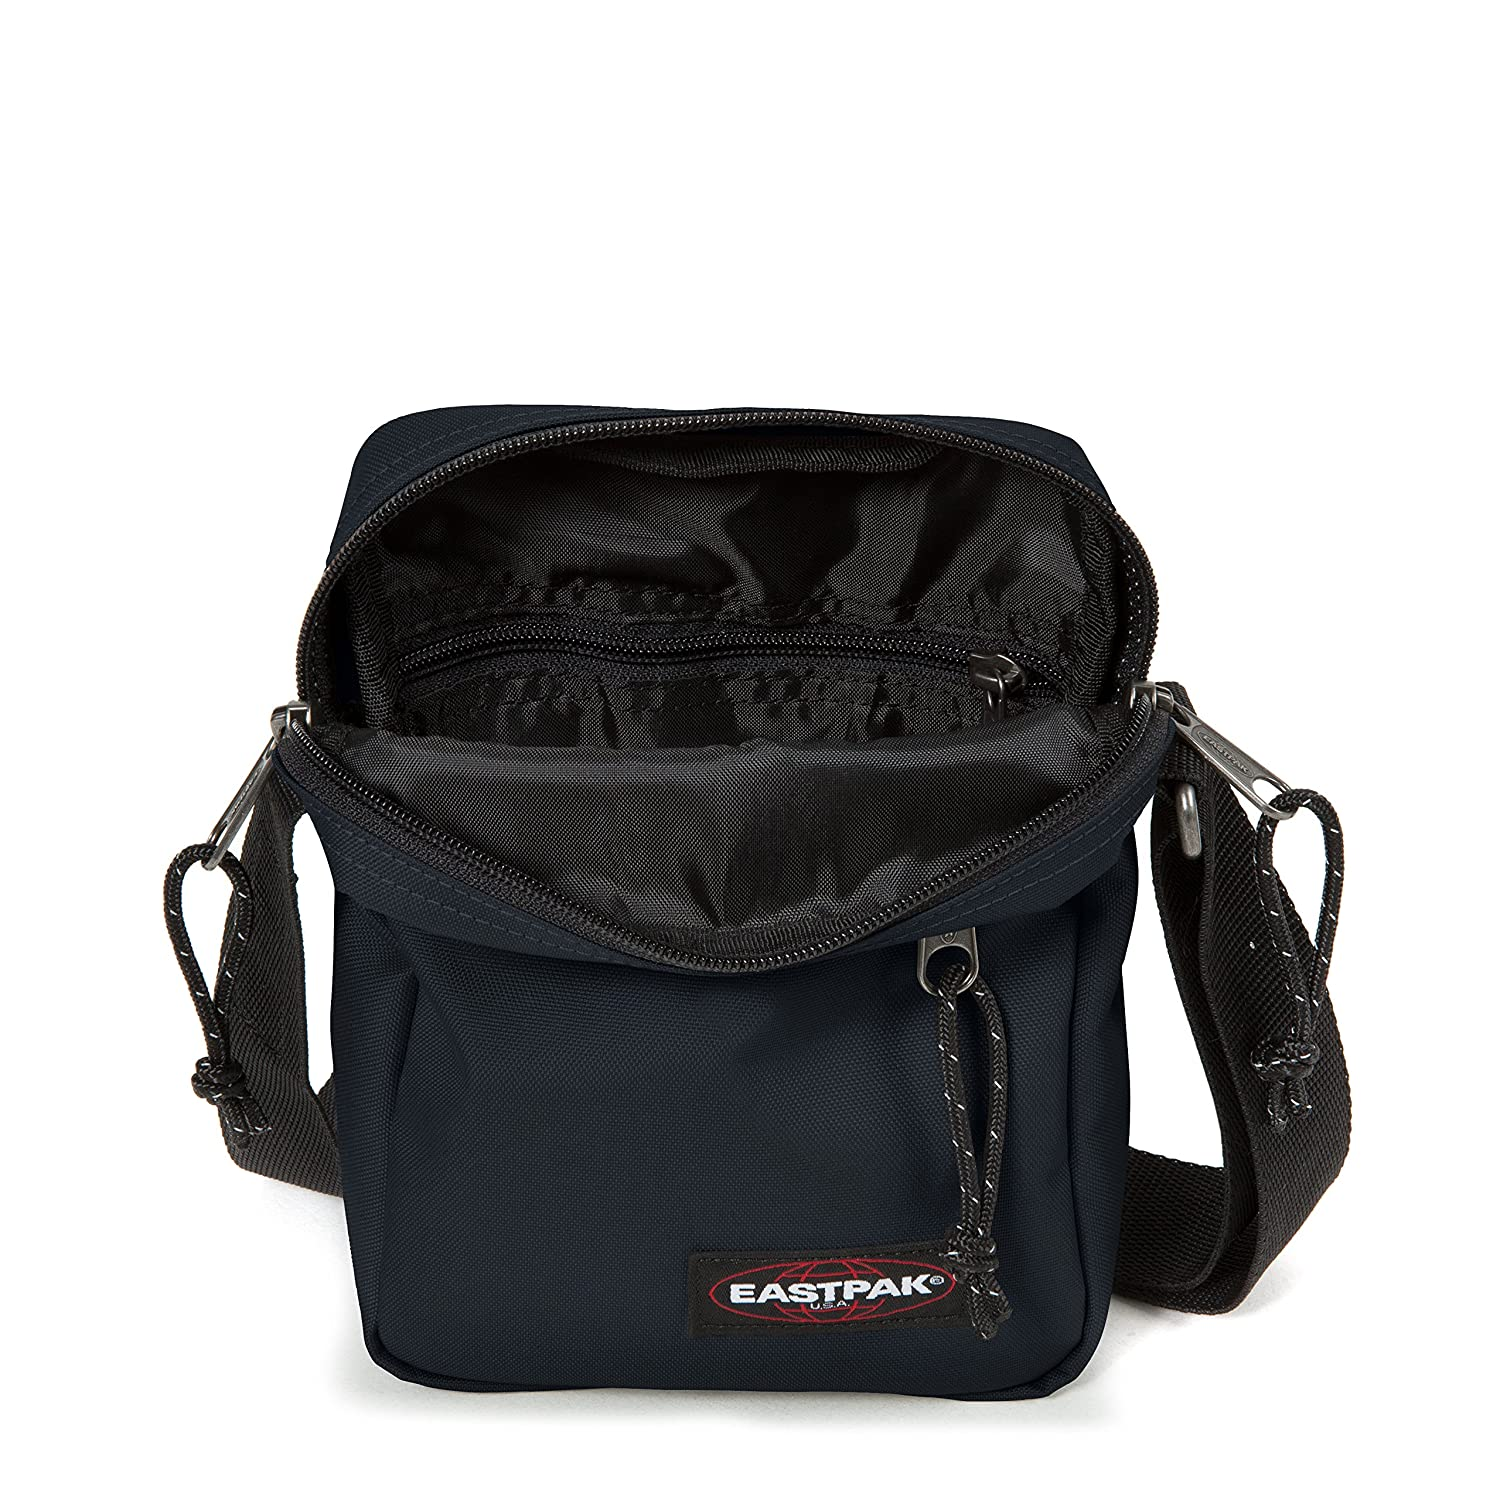 22054ebe95 Eastpak The One, Borsa A Tracolla Unisex - Adulto, Blu (Cloud Navy), 2.5  liters, 21 centimeters: Amazon.it: Valigeria